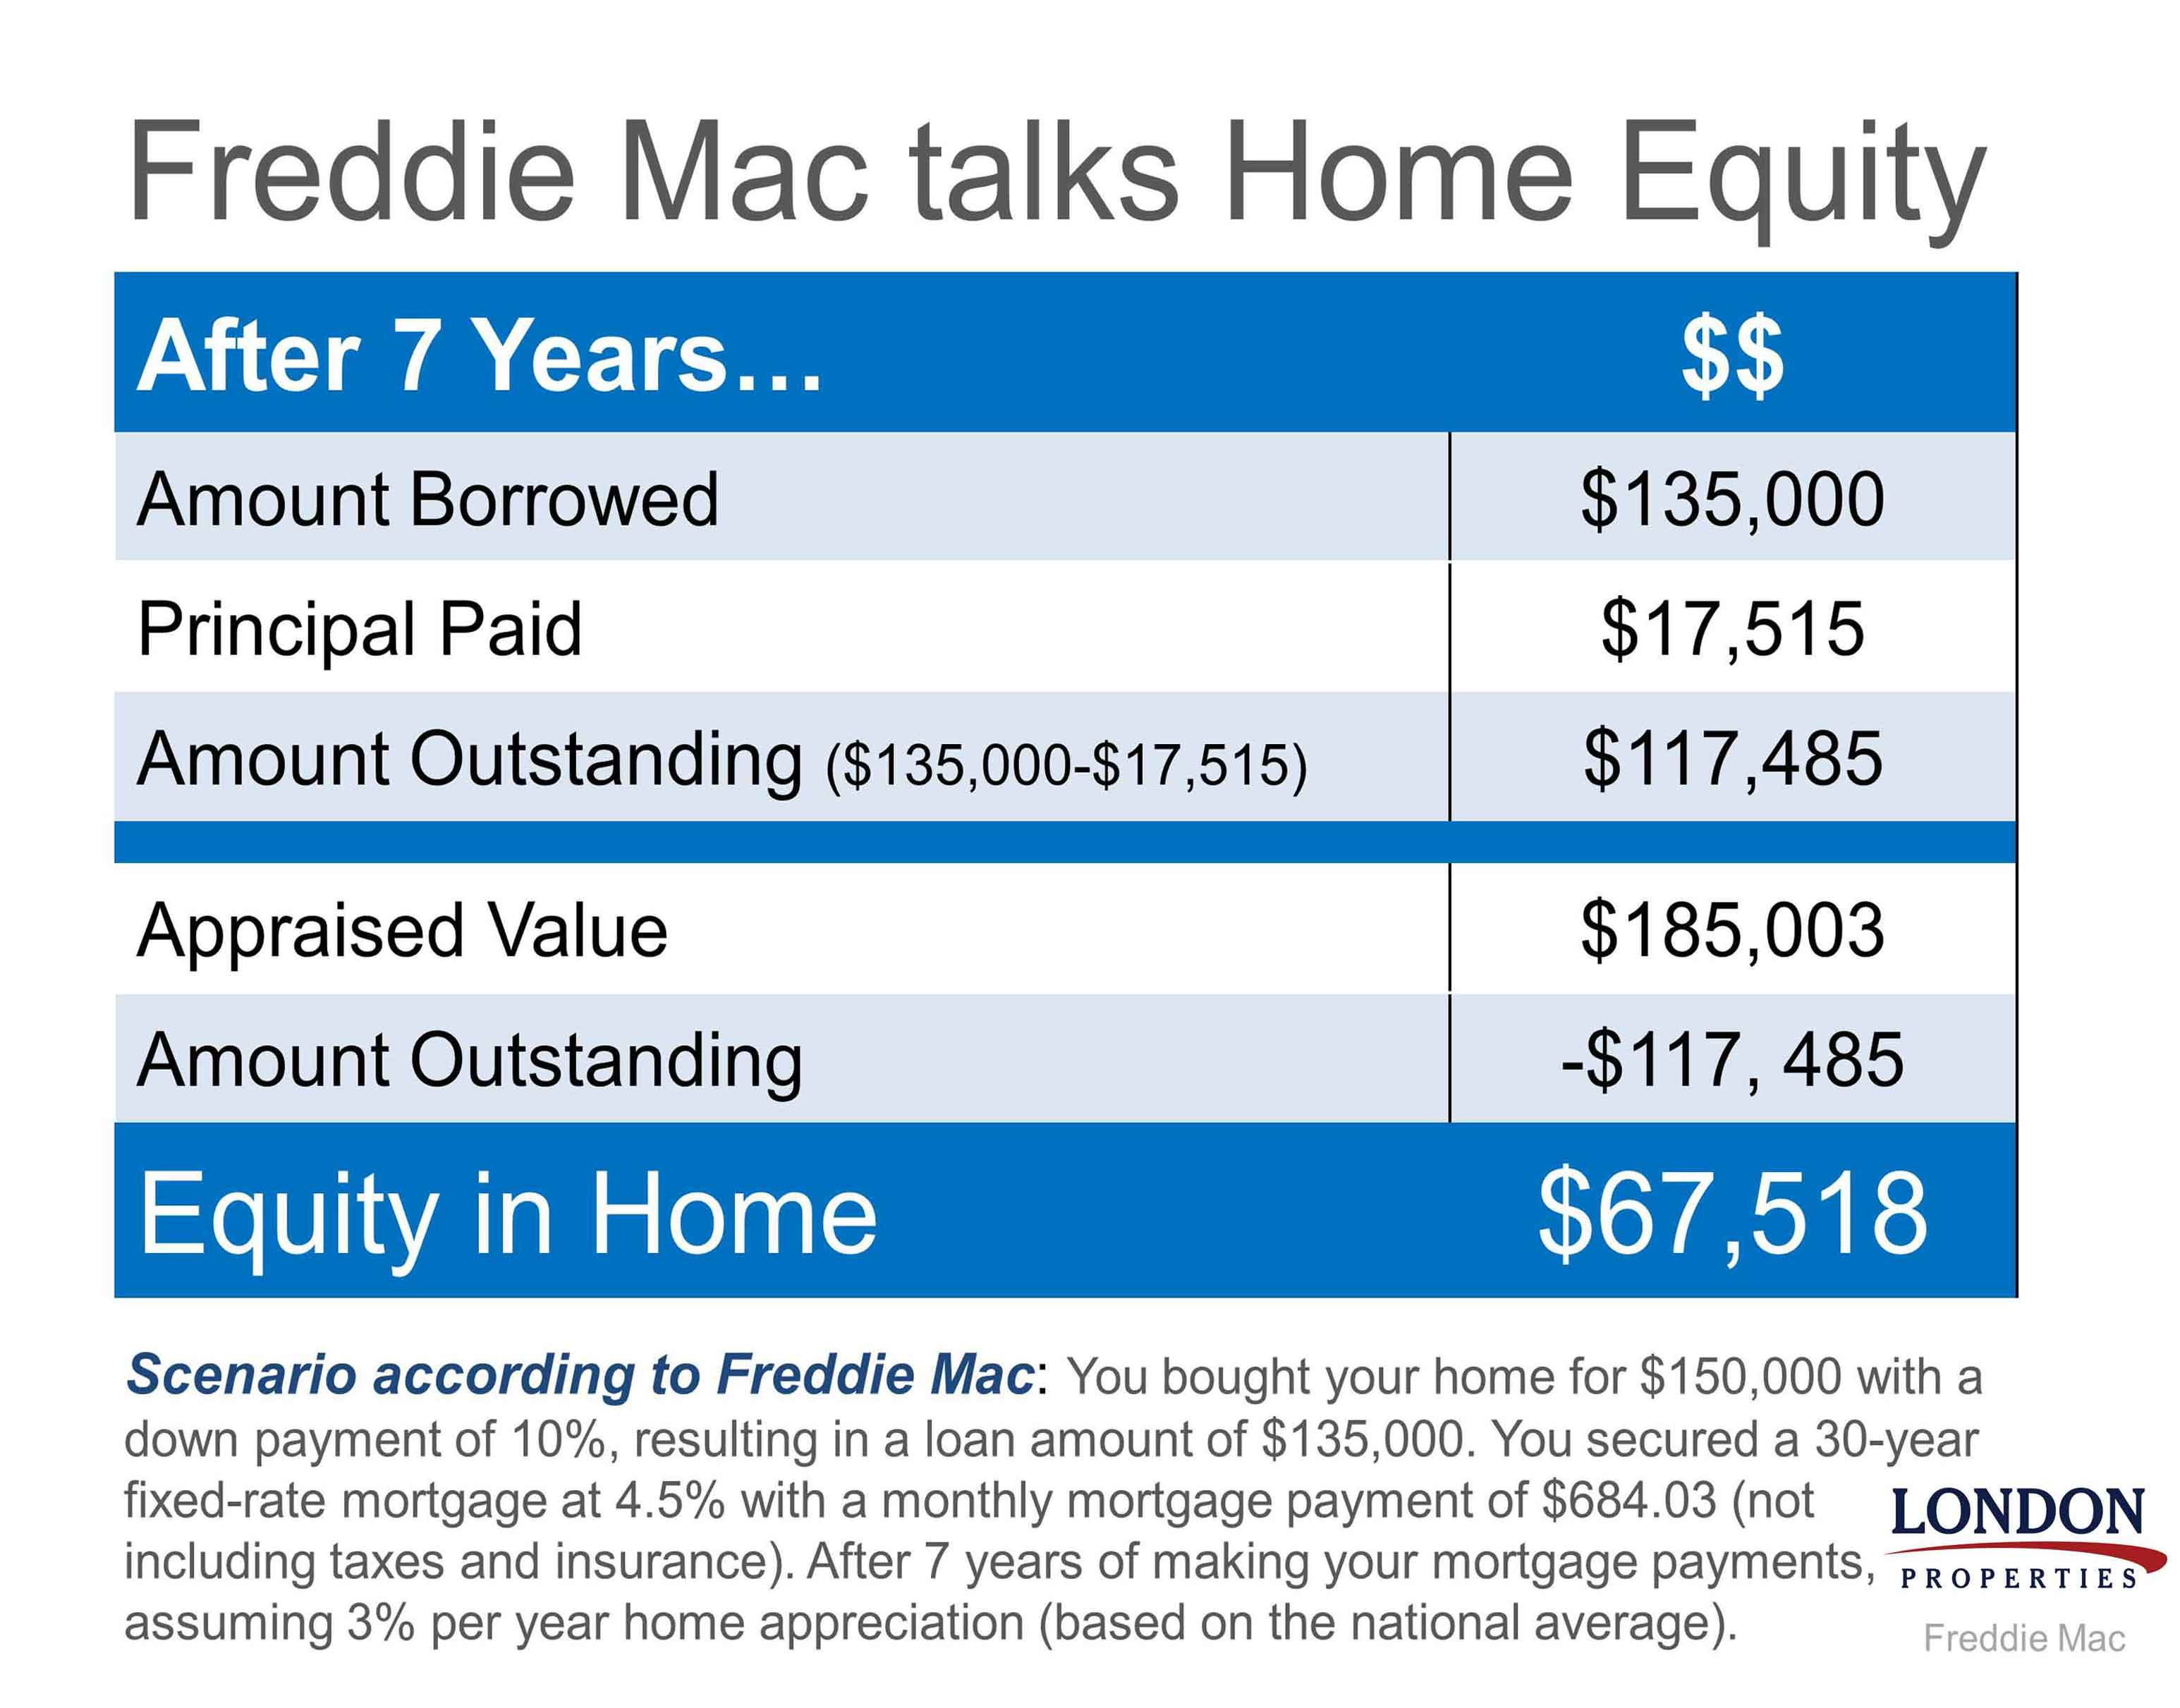 Freddie Mac Talks Home Equity